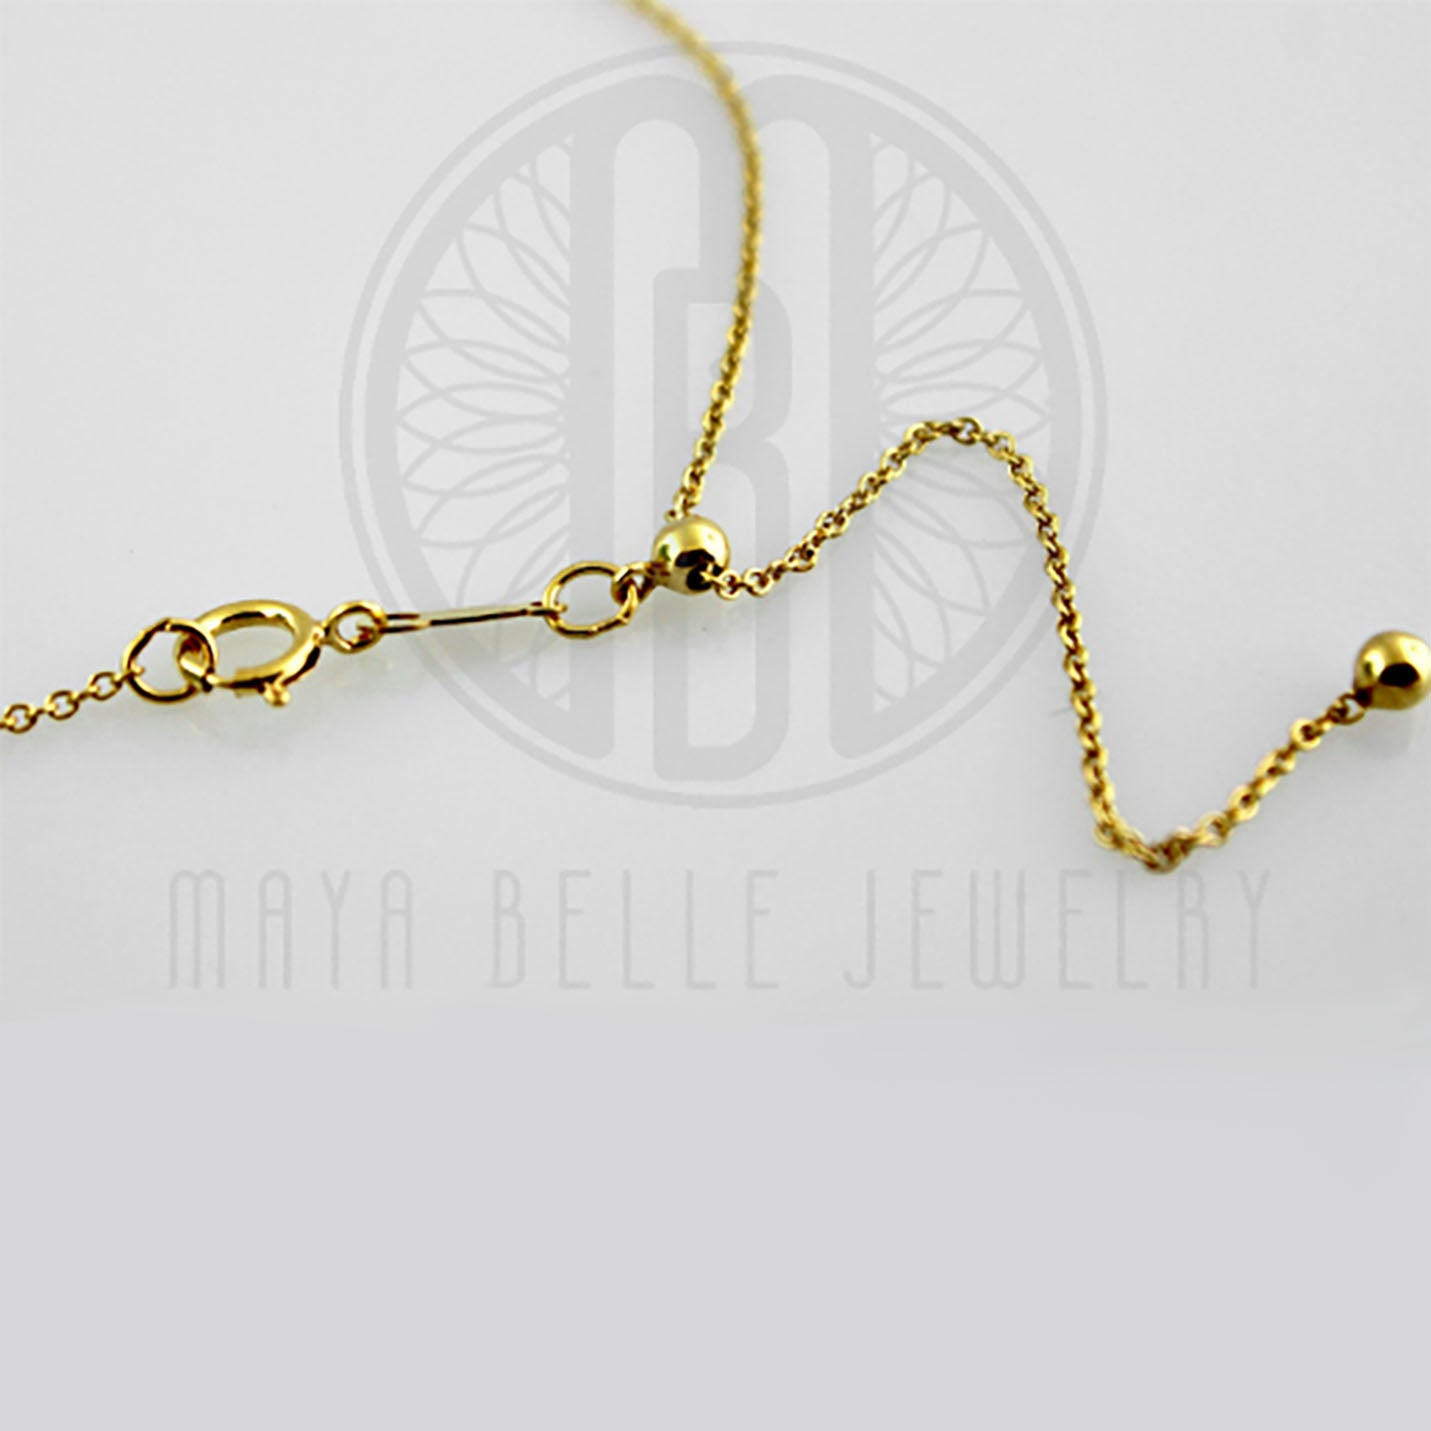 "14k GF 22"" Adjustable Cable Chain - Maya Belle Jewelry"